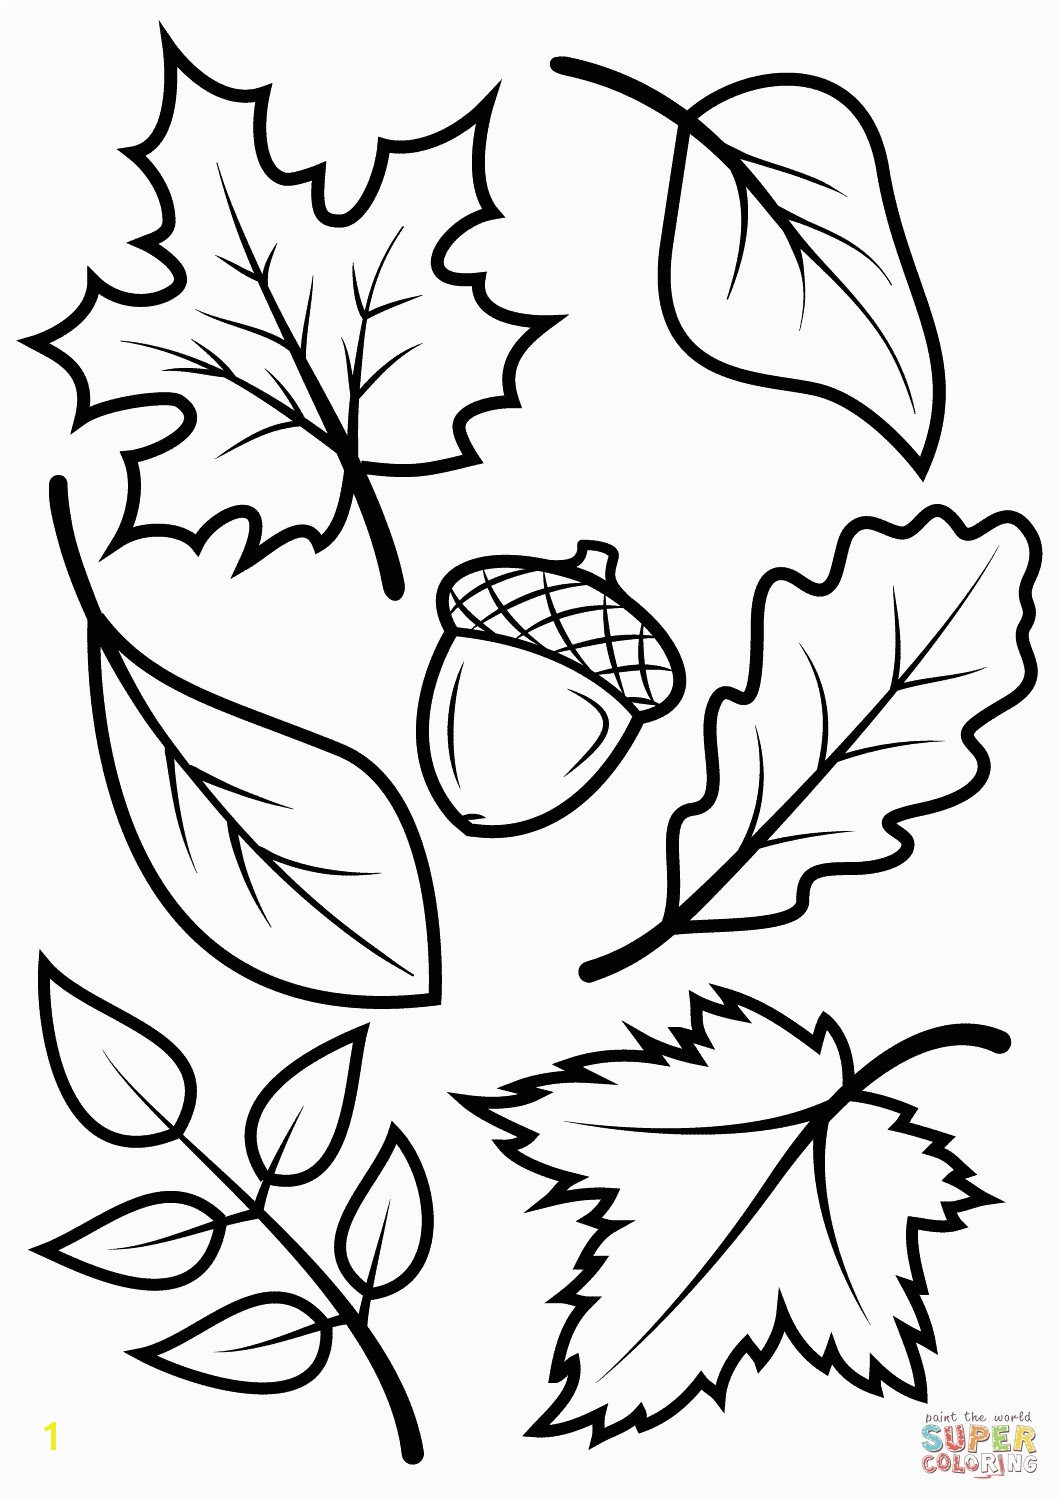 Fall Leaves Coloring Pages Fall Leaves Coloring Pages Beautiful Best Coloring Page Adult Od